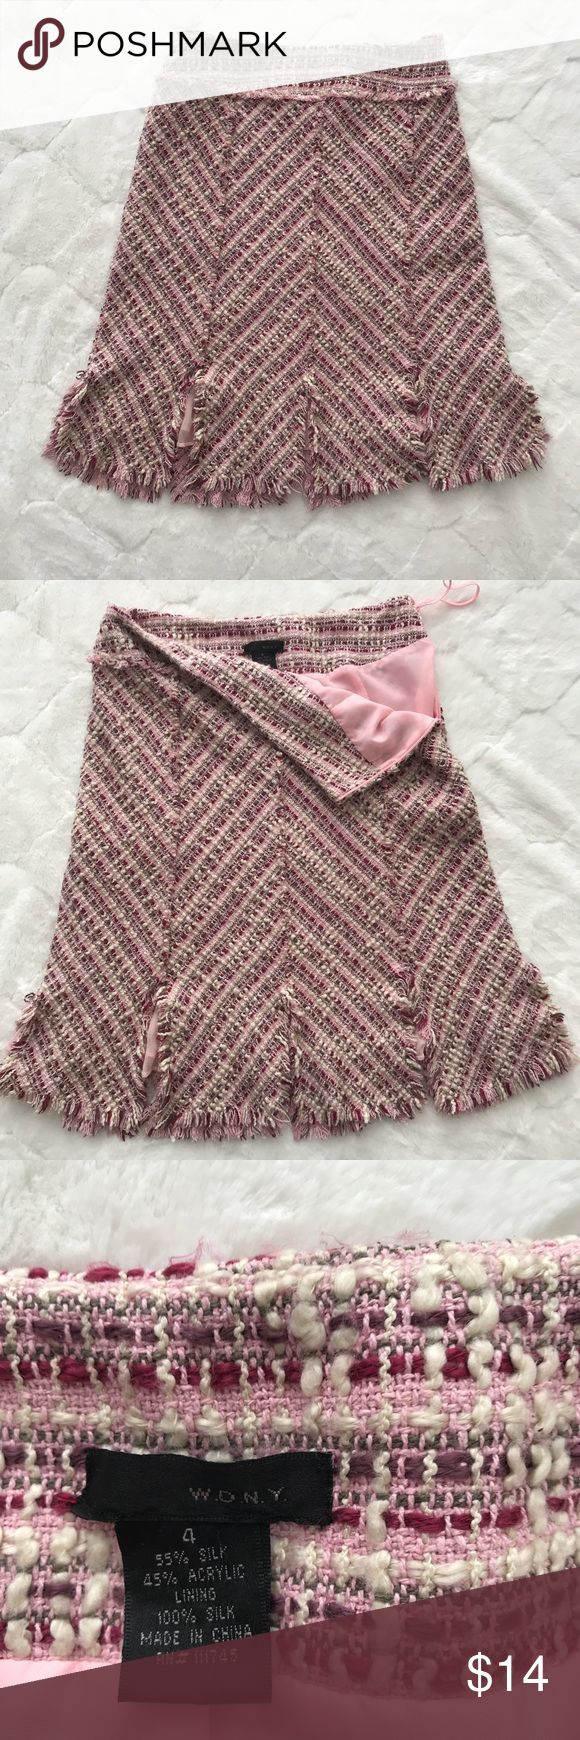 WDNY pink skirt WDNY pink skirt Size 4 EUC Side zip Car wash hem Acrylic/silk blend Silk lining peaks out when you move 💕 fun for Valentine's Day 💕 WD.NY Skirts